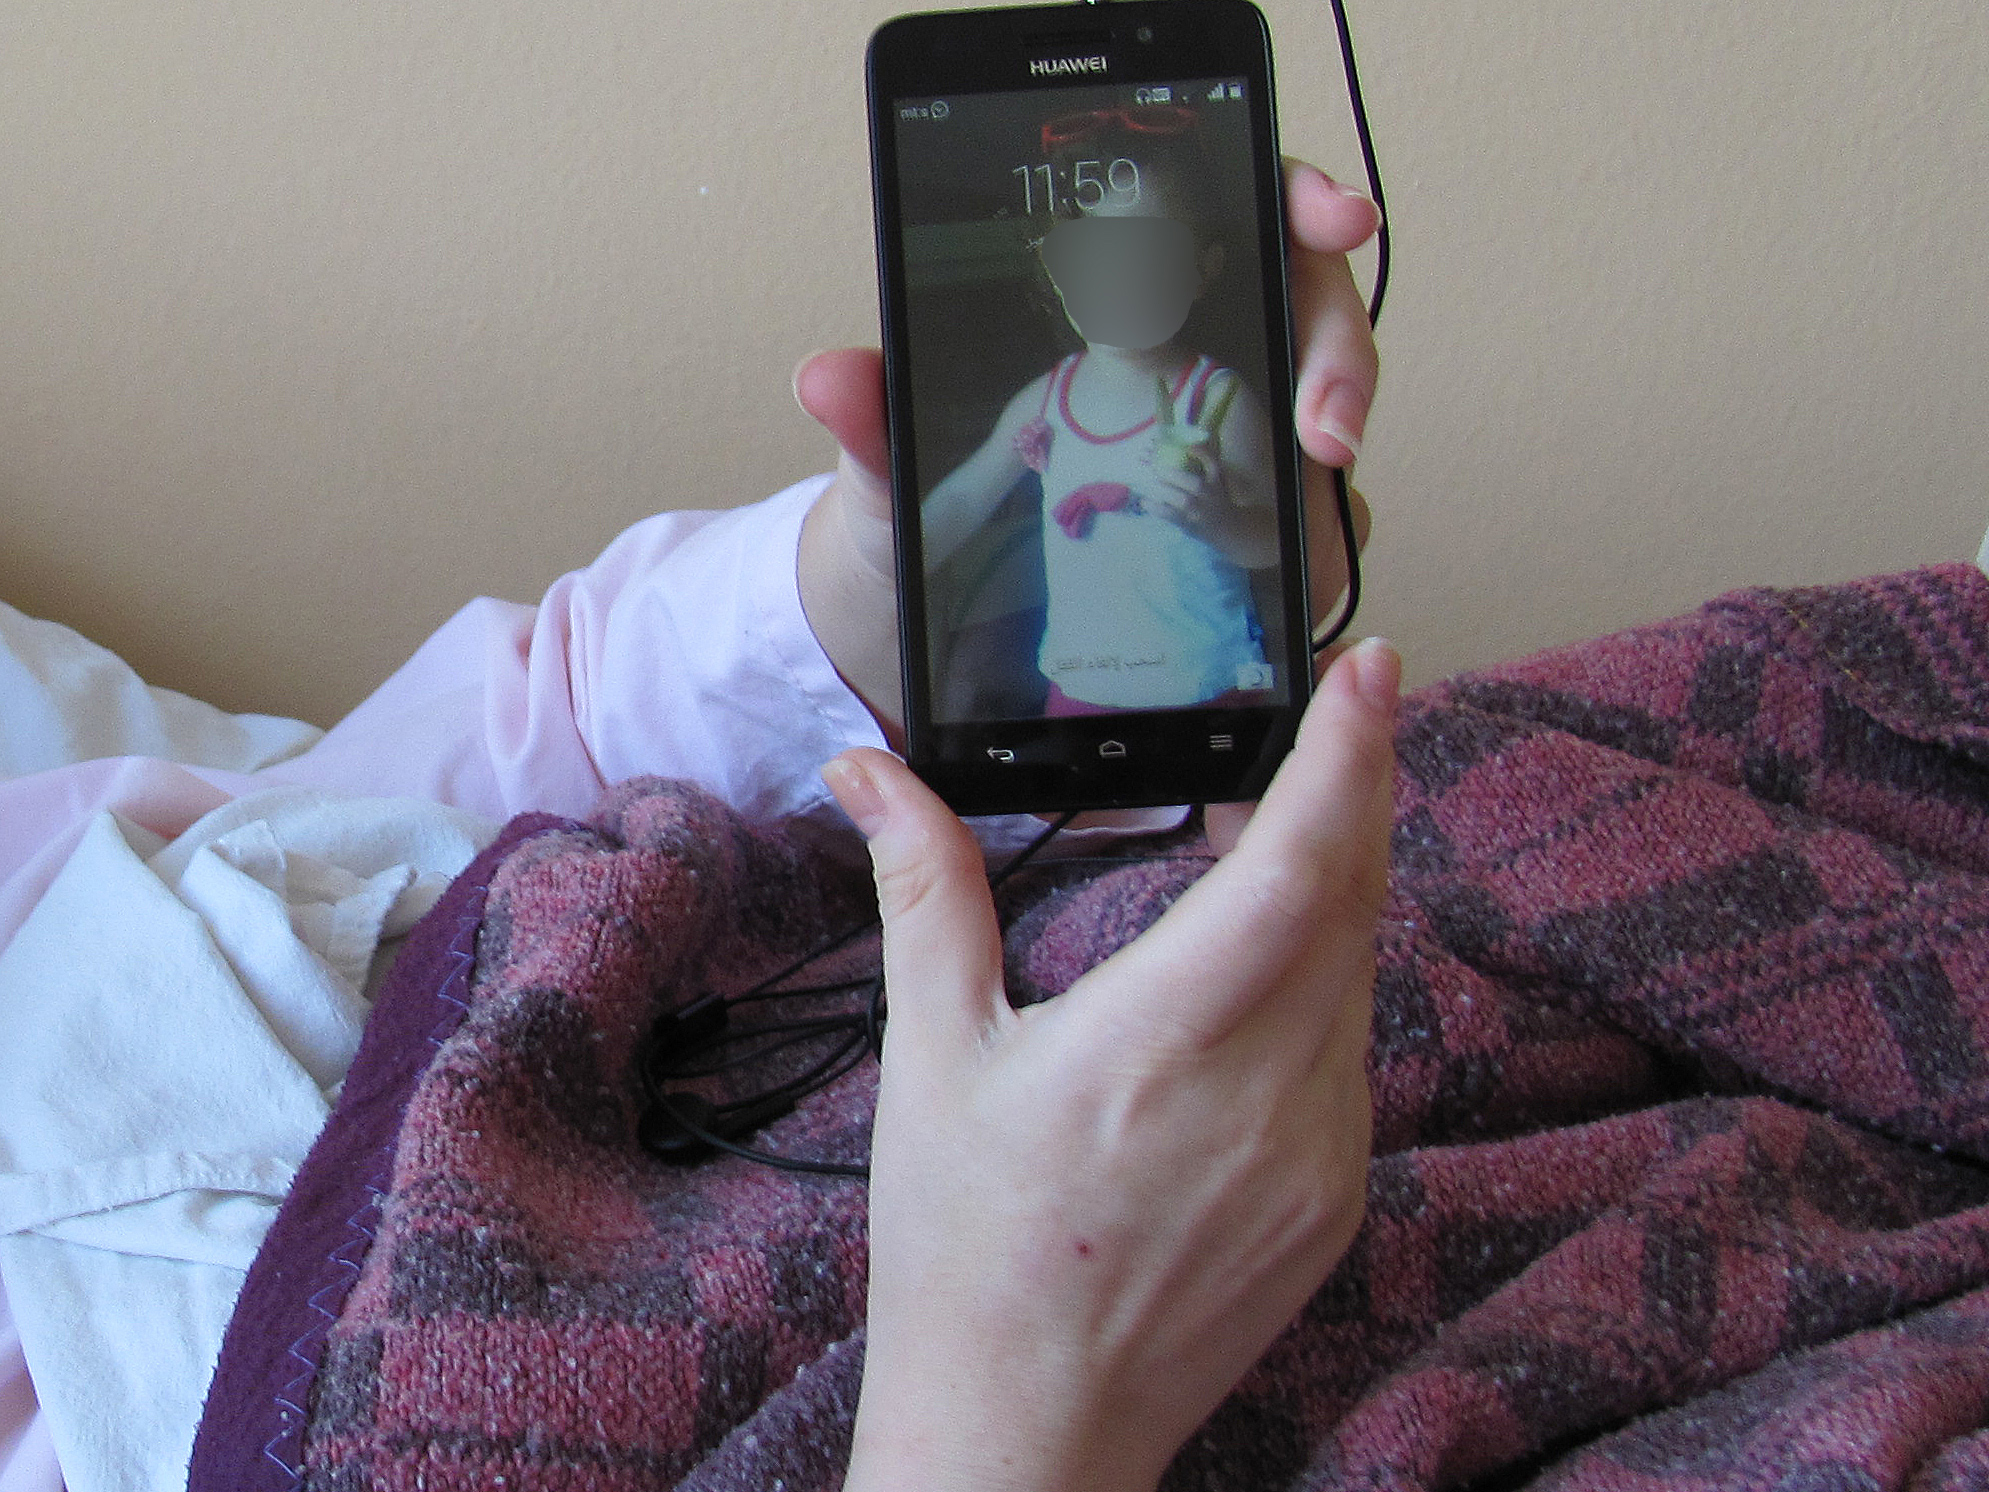 Thumbnail for Serbia: Family contact brings lifeline for injured Syrian refugee